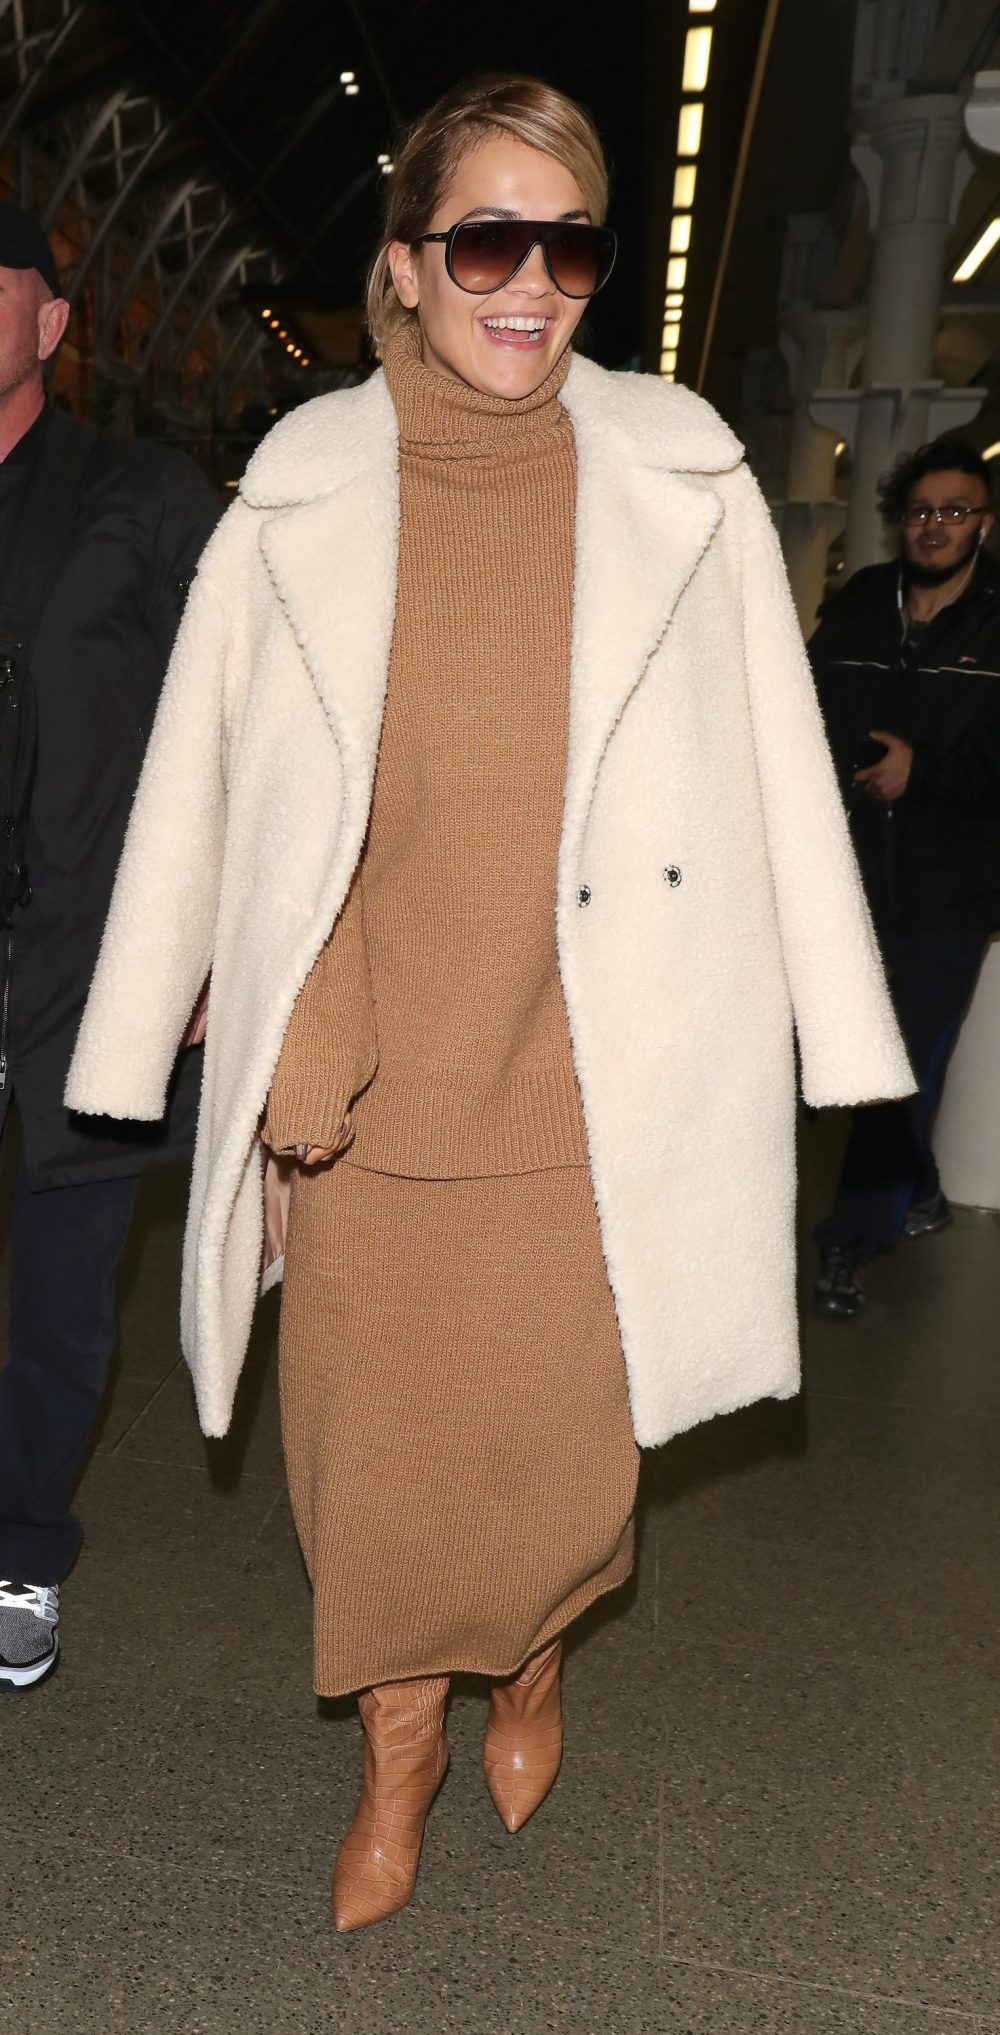 Rita Ora arrives at St Pancras station after attending Paris Fashion Week